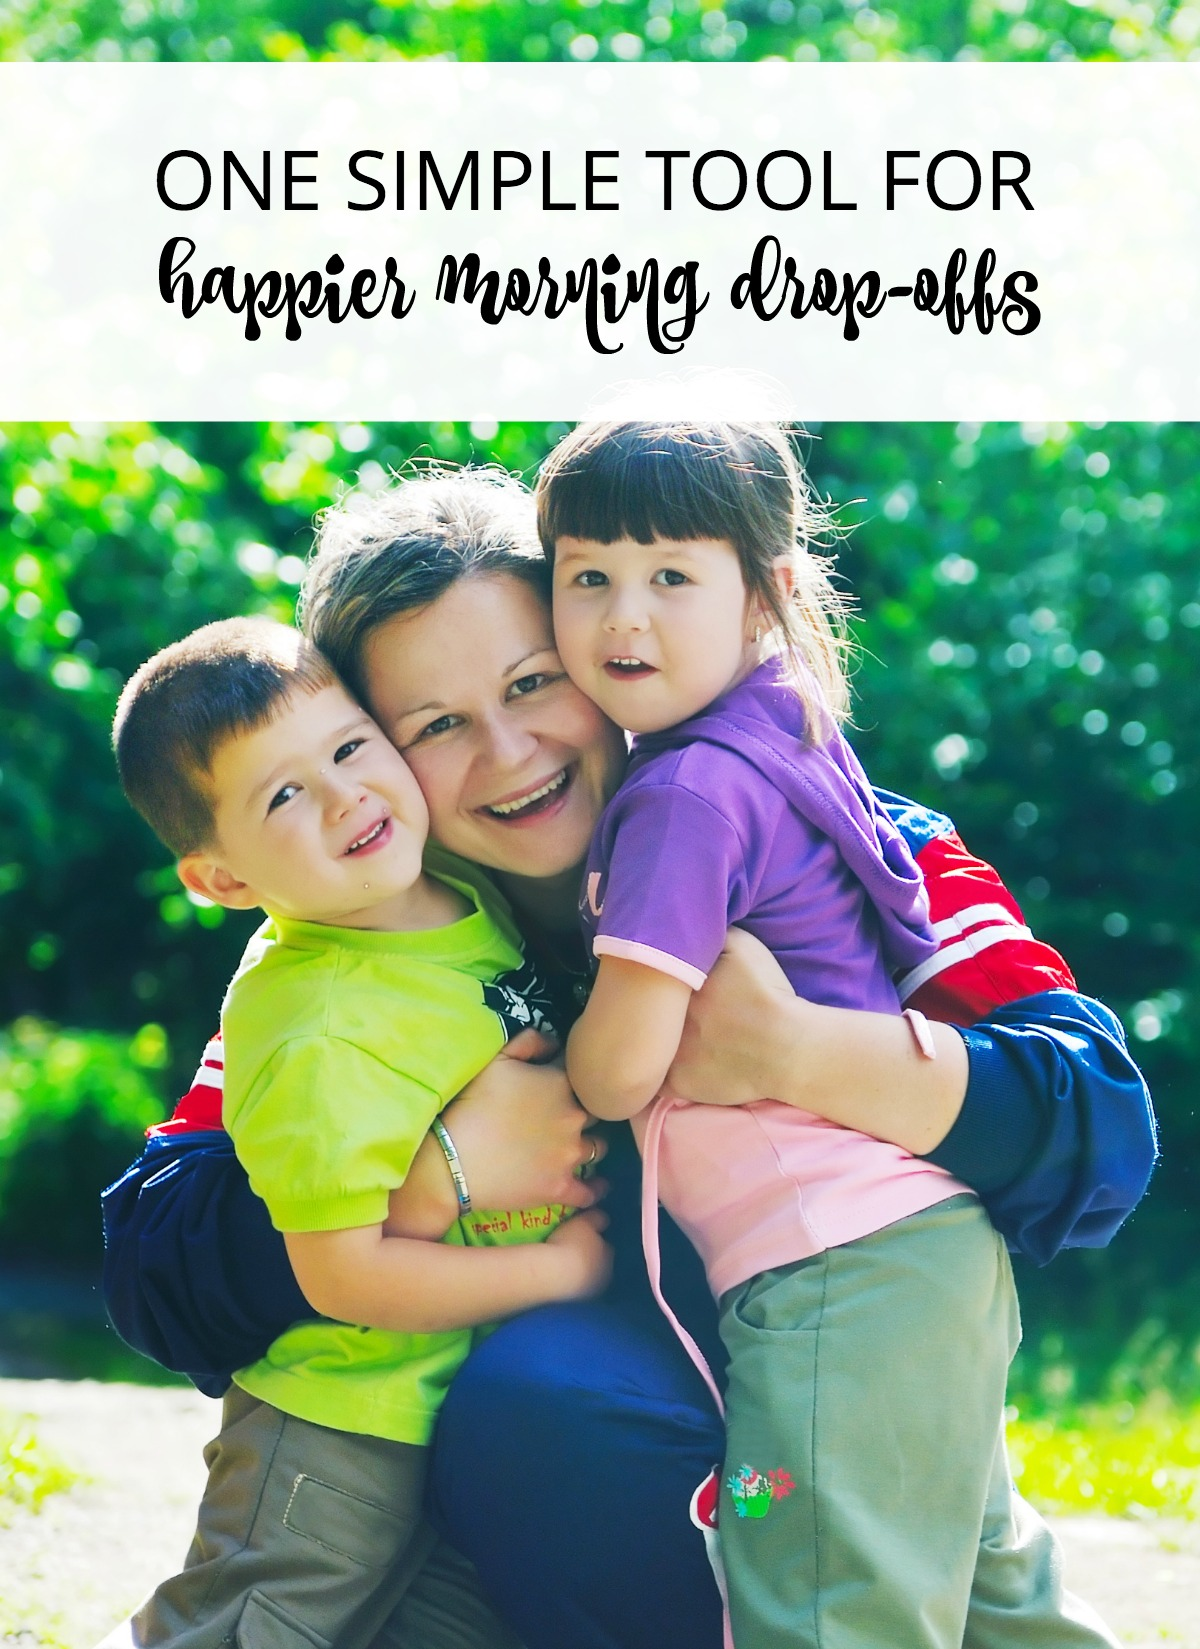 Does your morning drop-off at daycare or school result in clinging or crying? Try this simple way to empower your kids and experience a happier morning for all.